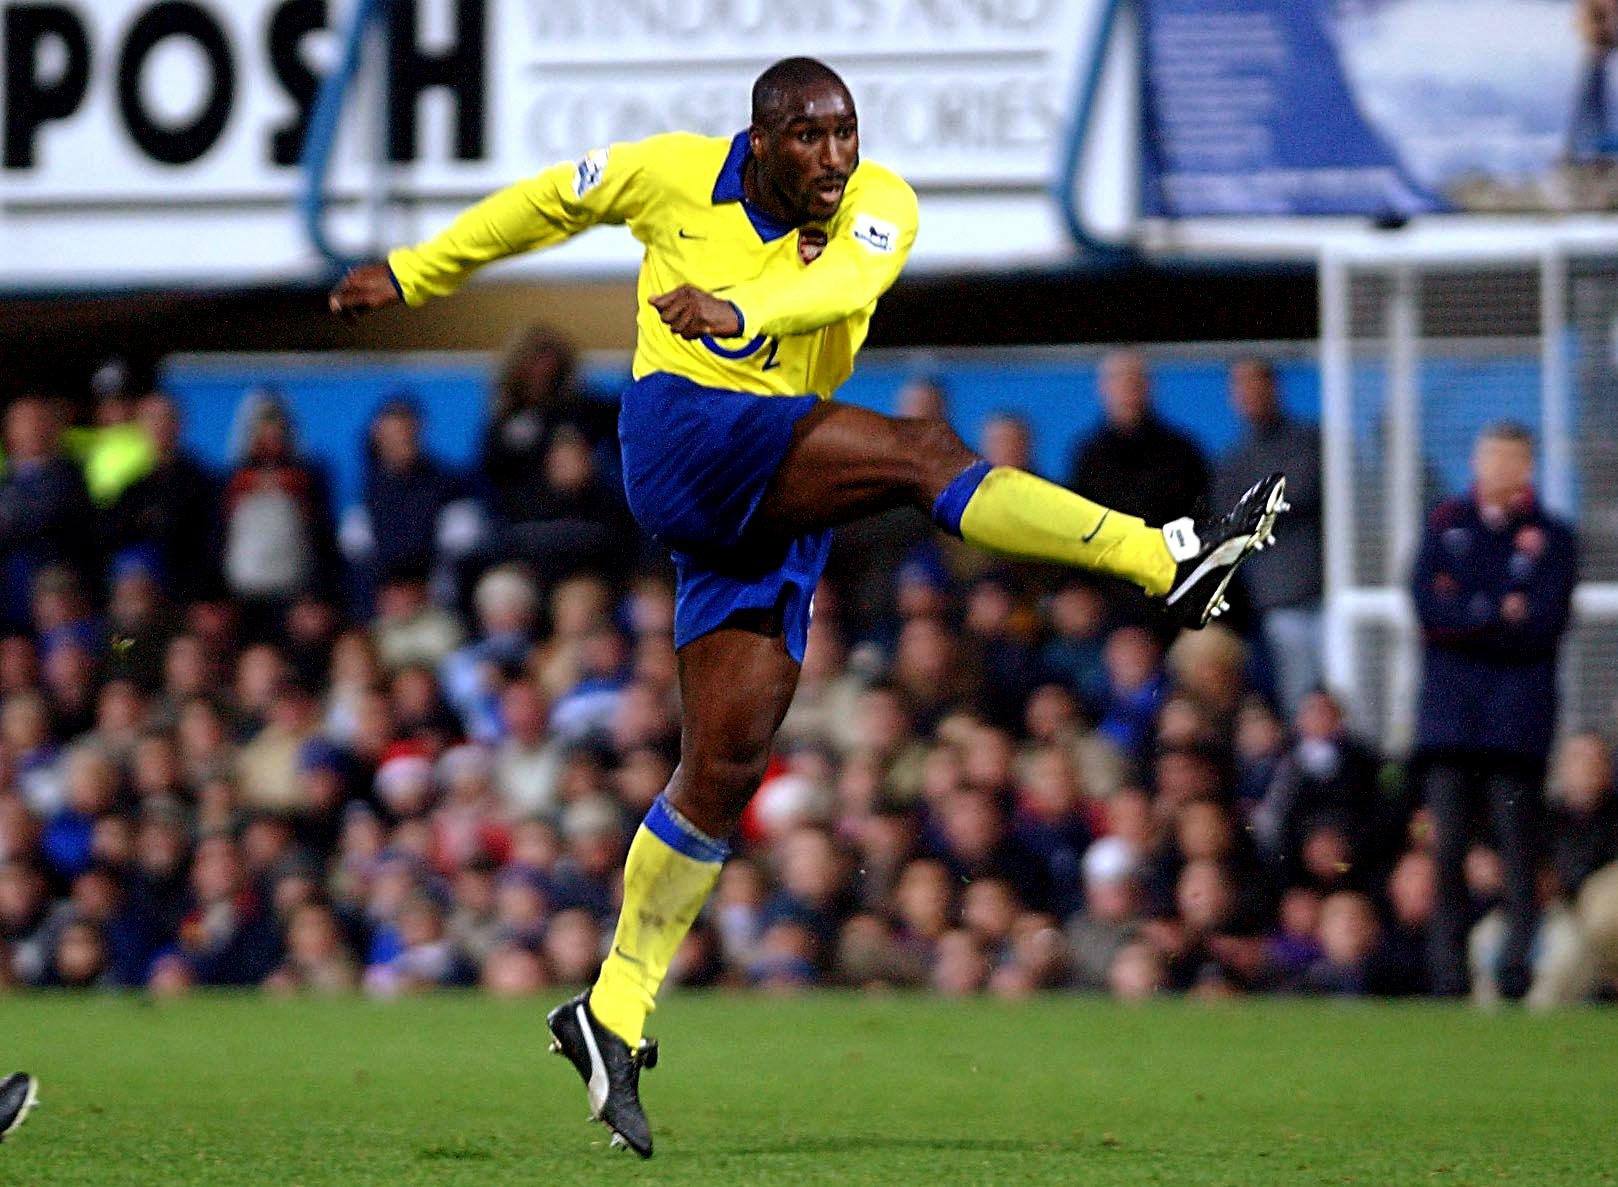 Sol Campbell, pictured playing for Arsenal in 2004, was unsuccessful in applying to become Oxford United's next manager Picture: Sean Dempsey/PA